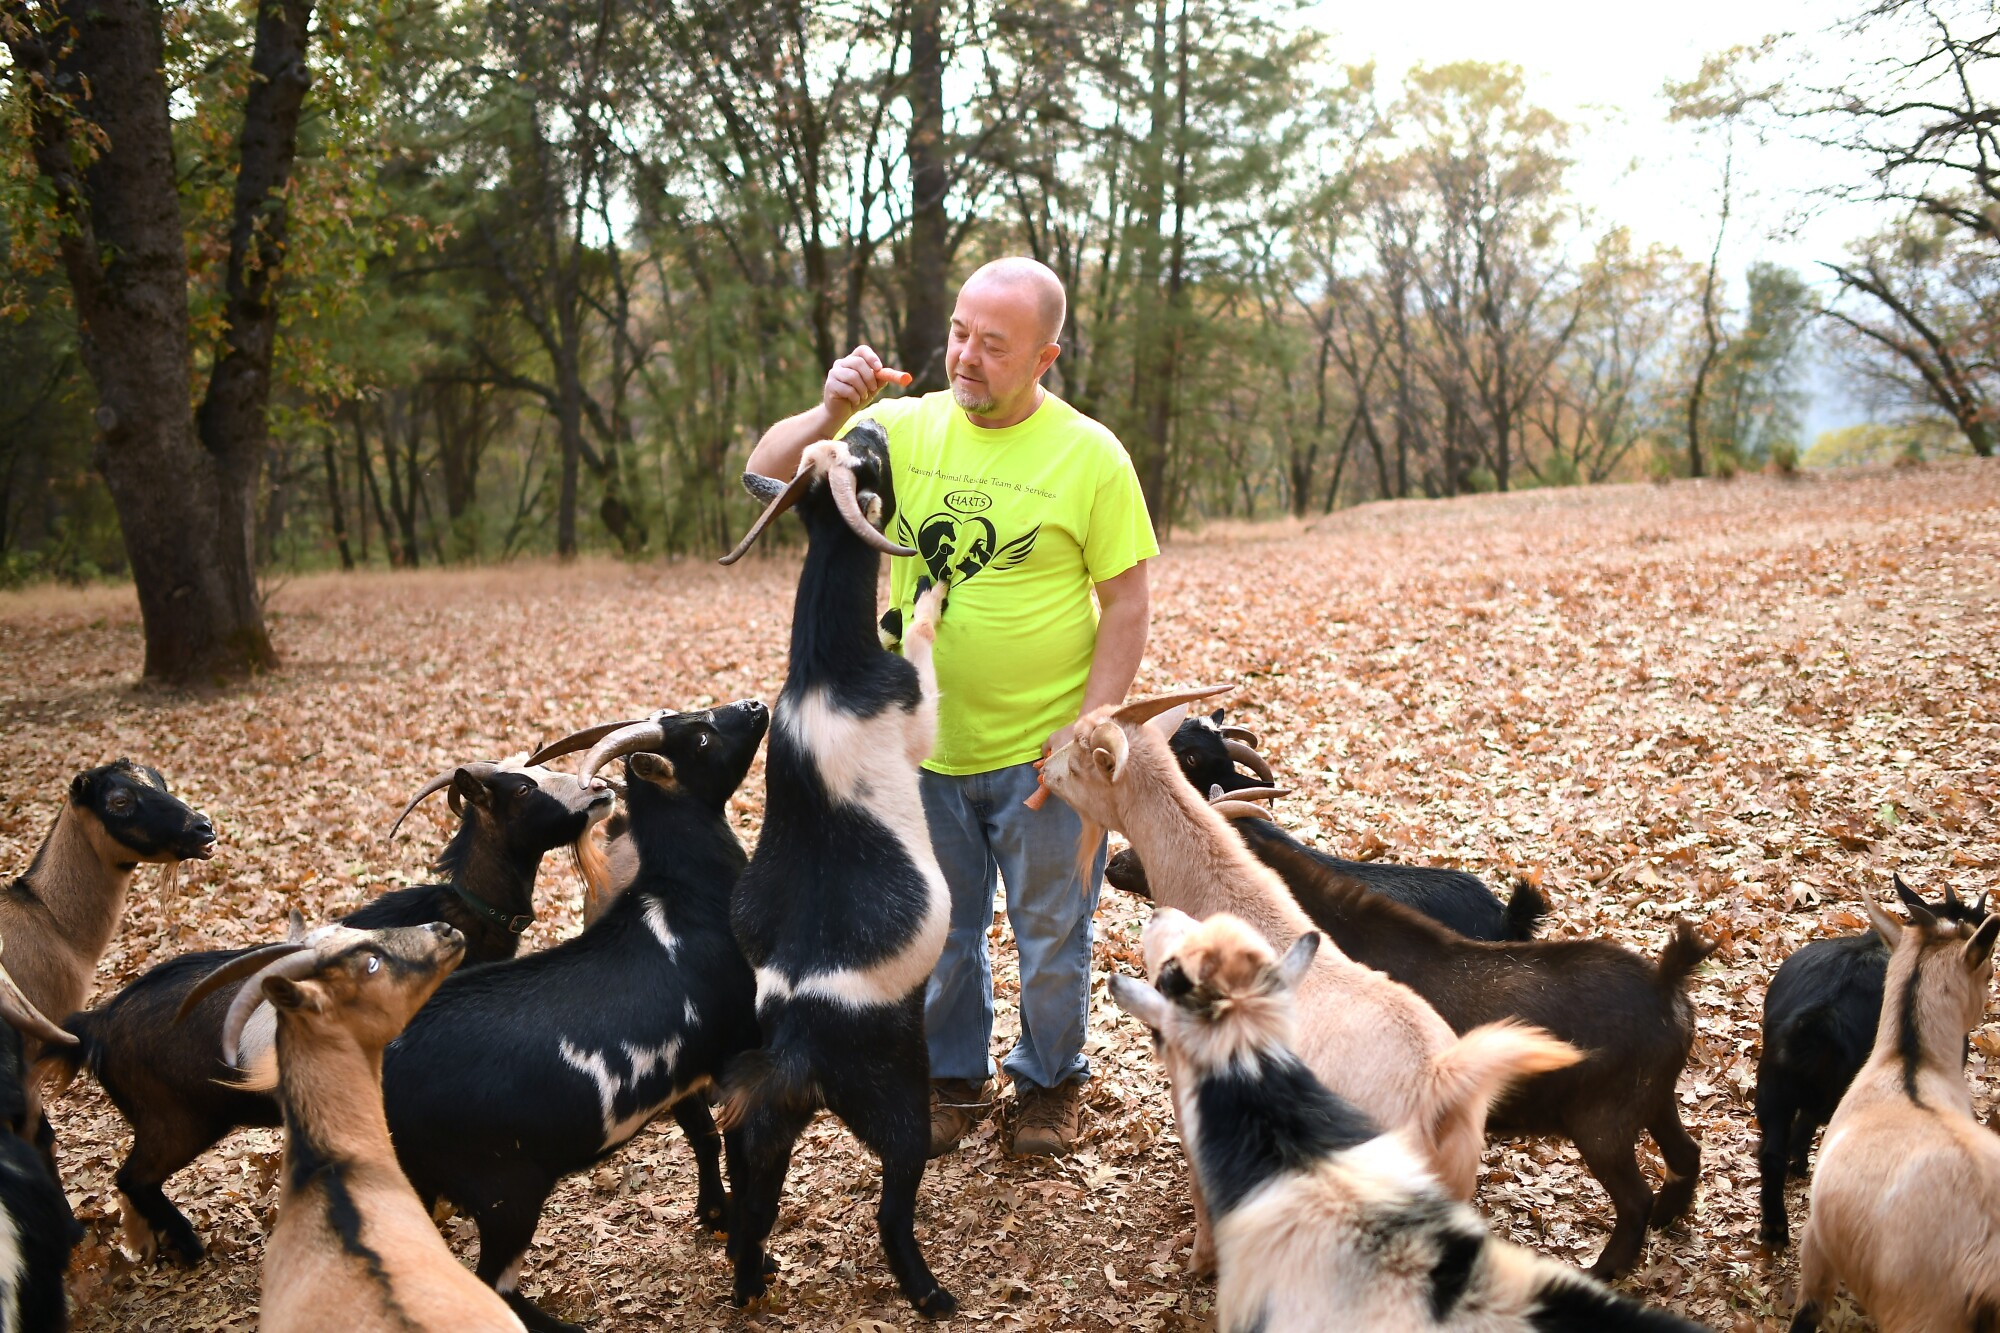 Jim Clark and his goats